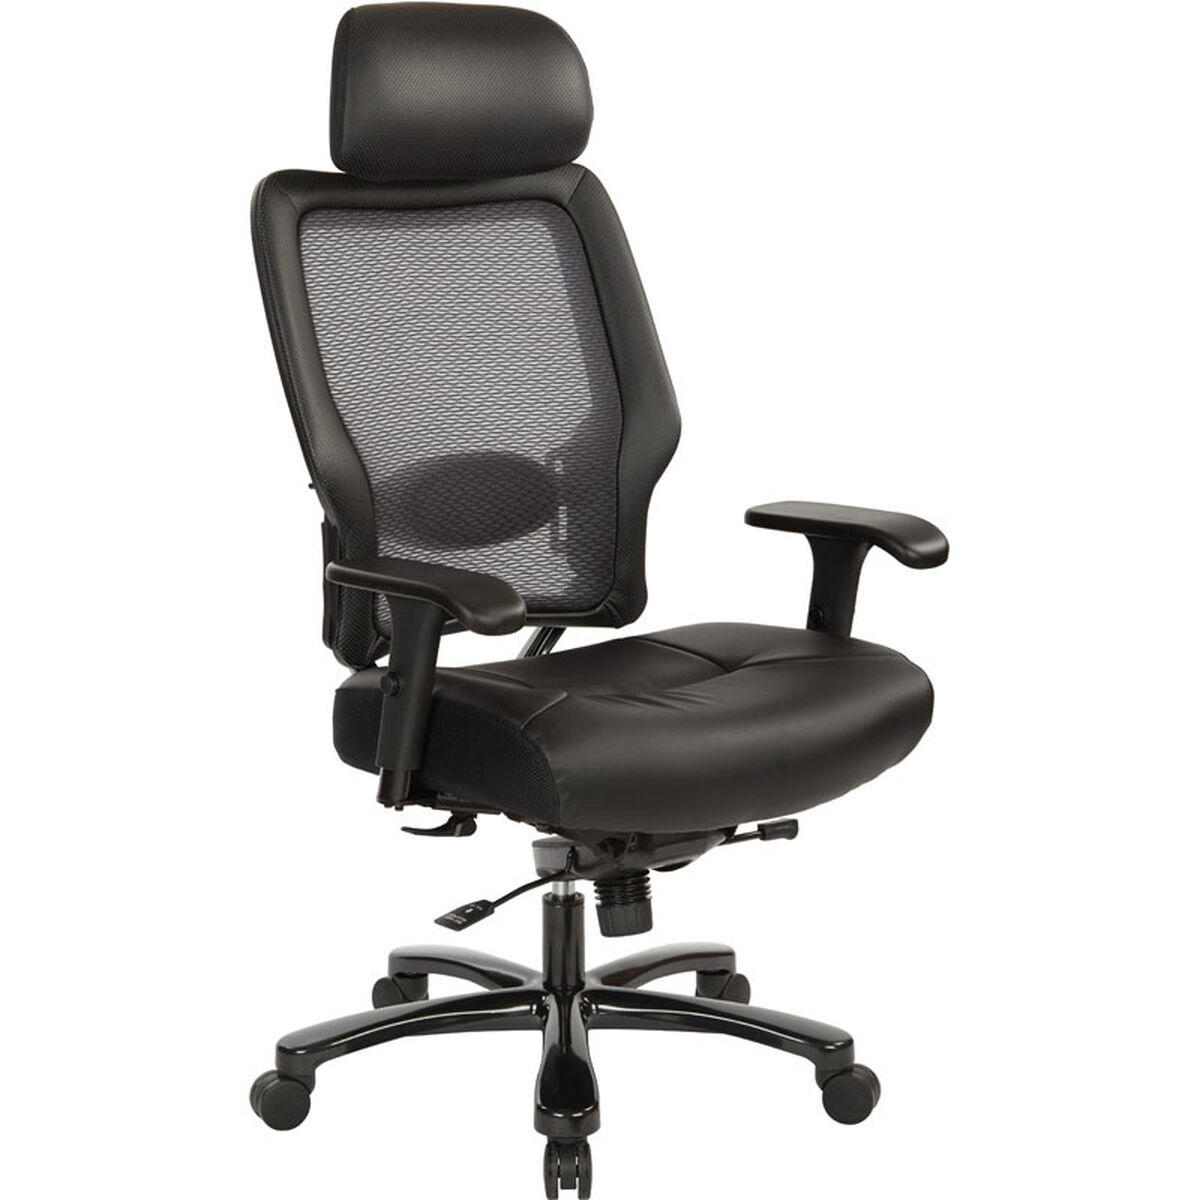 Weight Capacity Product 63 E37a773hl Os Video Our E Executive And Tall Bonded Leather Office Chair With Headrest 400 Lb